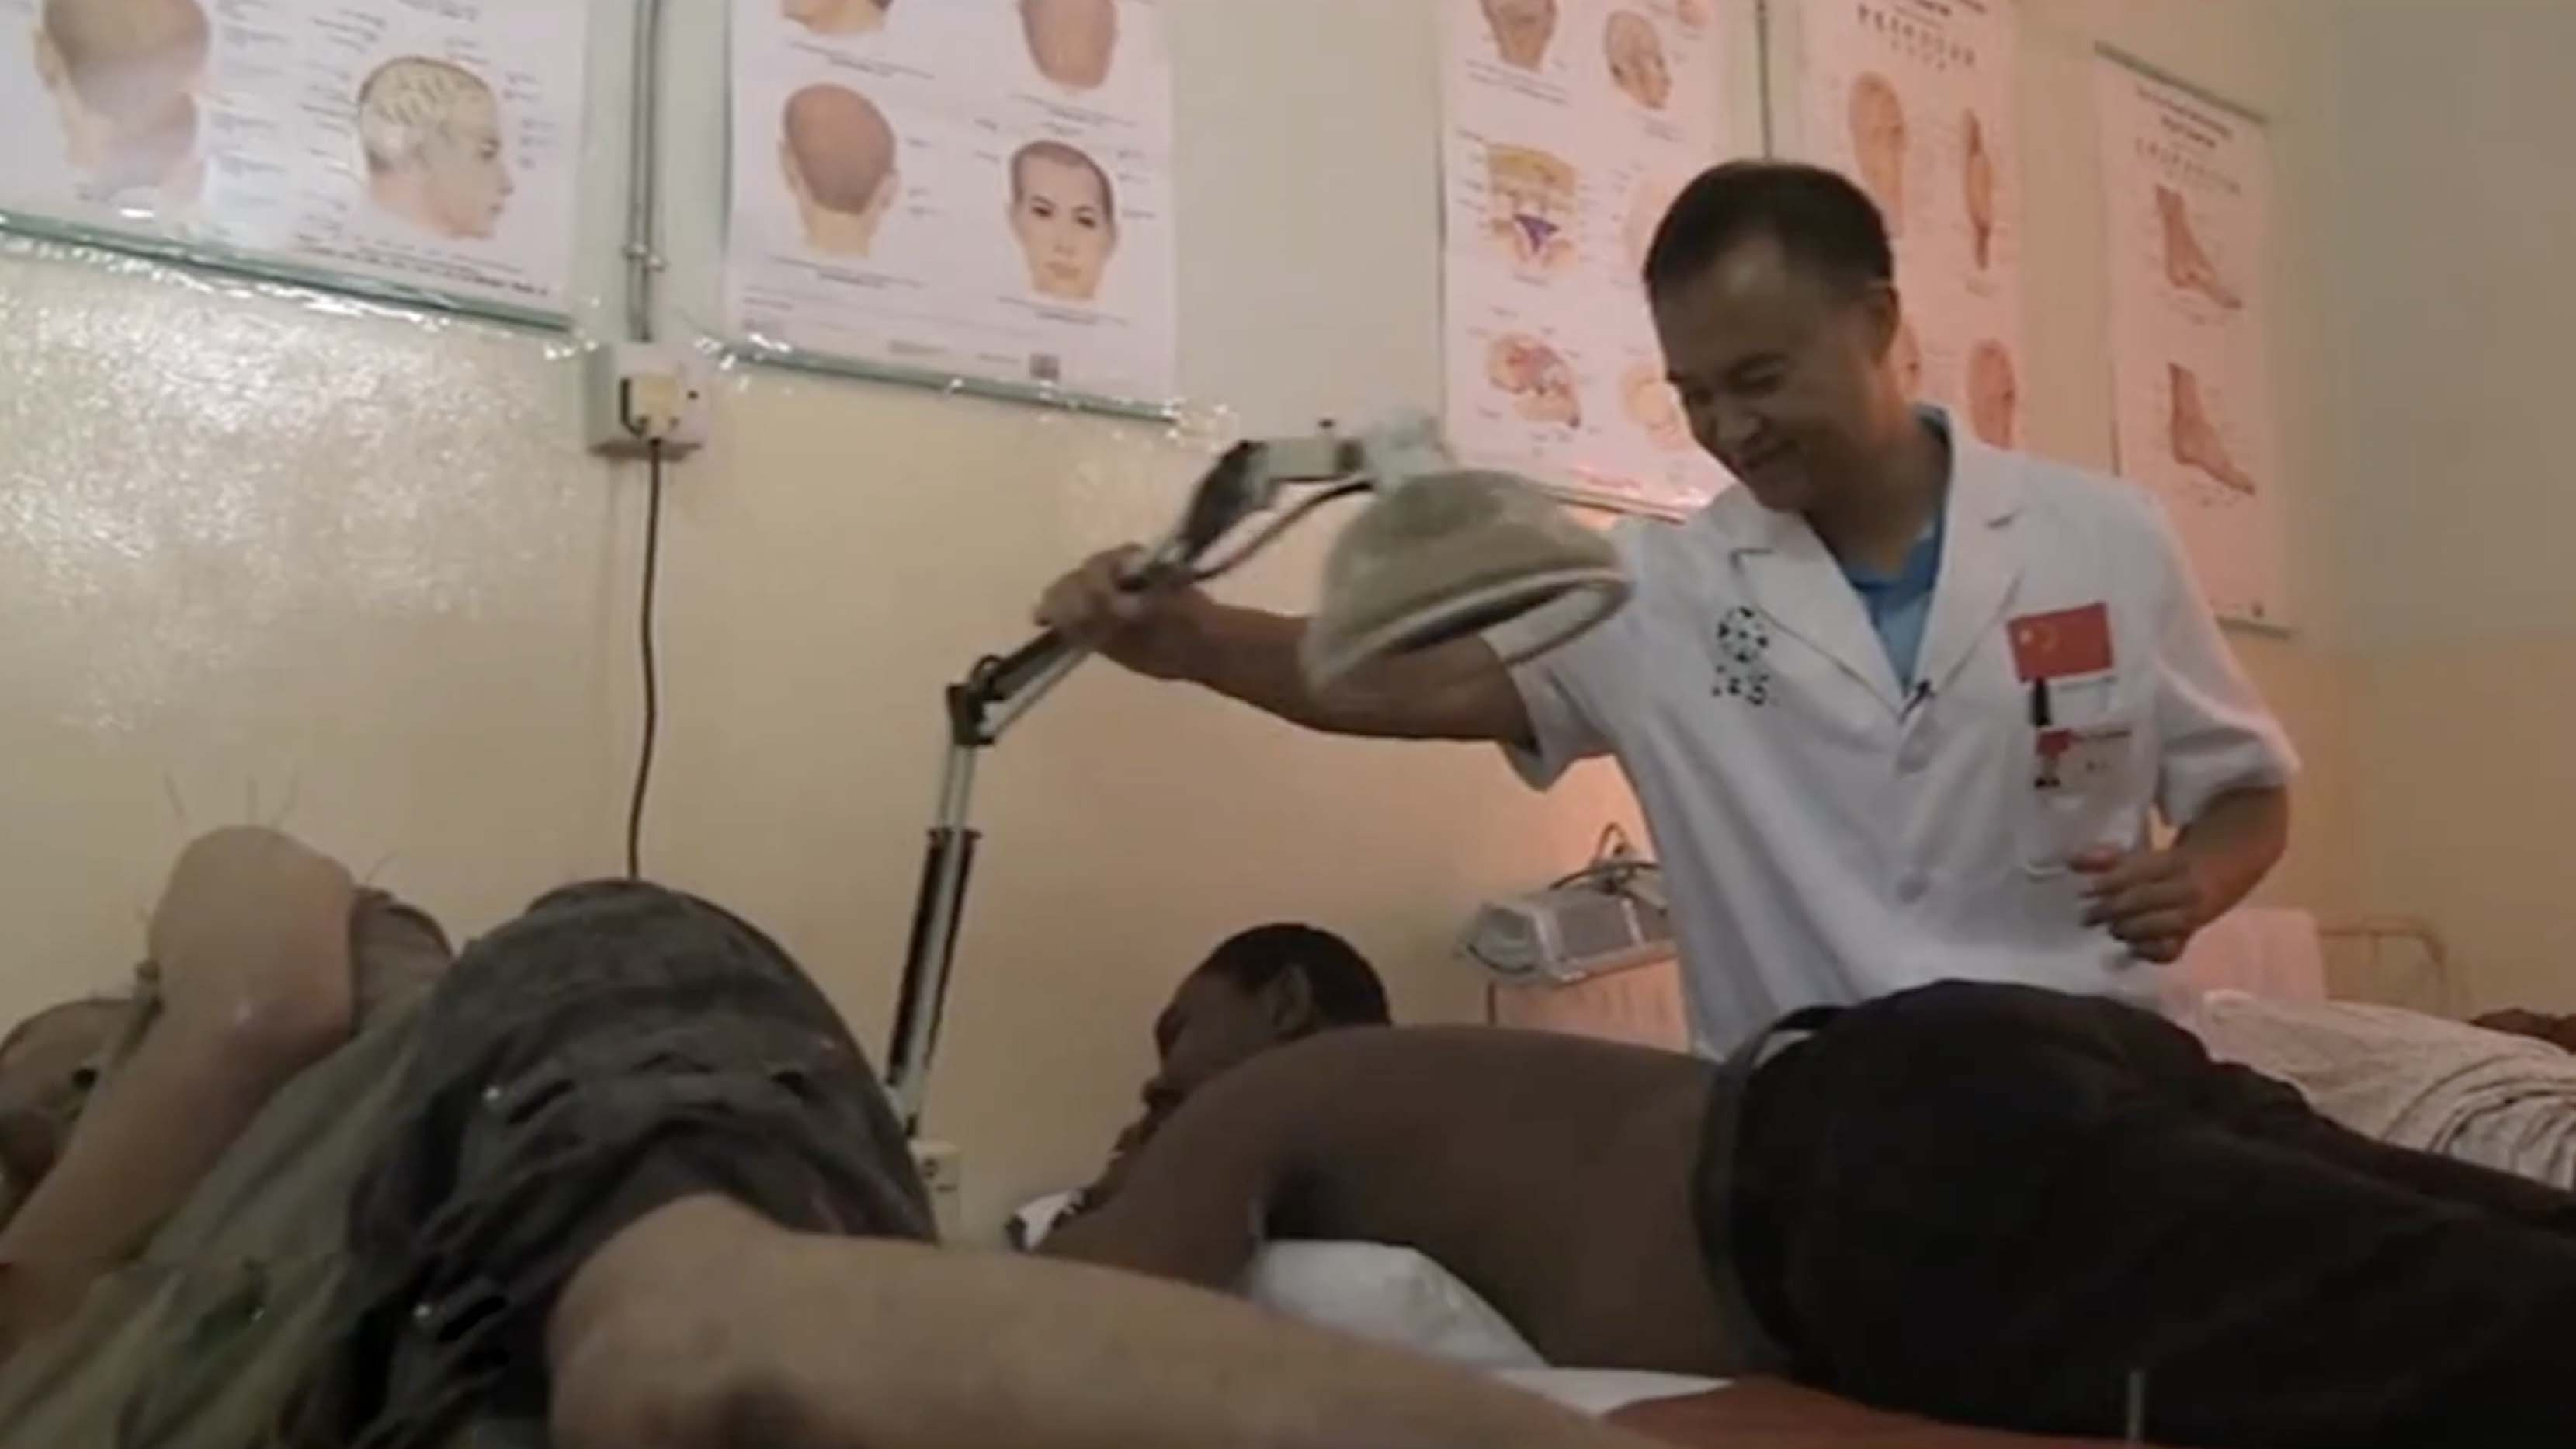 Traditional Chinese acupuncture treatment wins over Congo patients